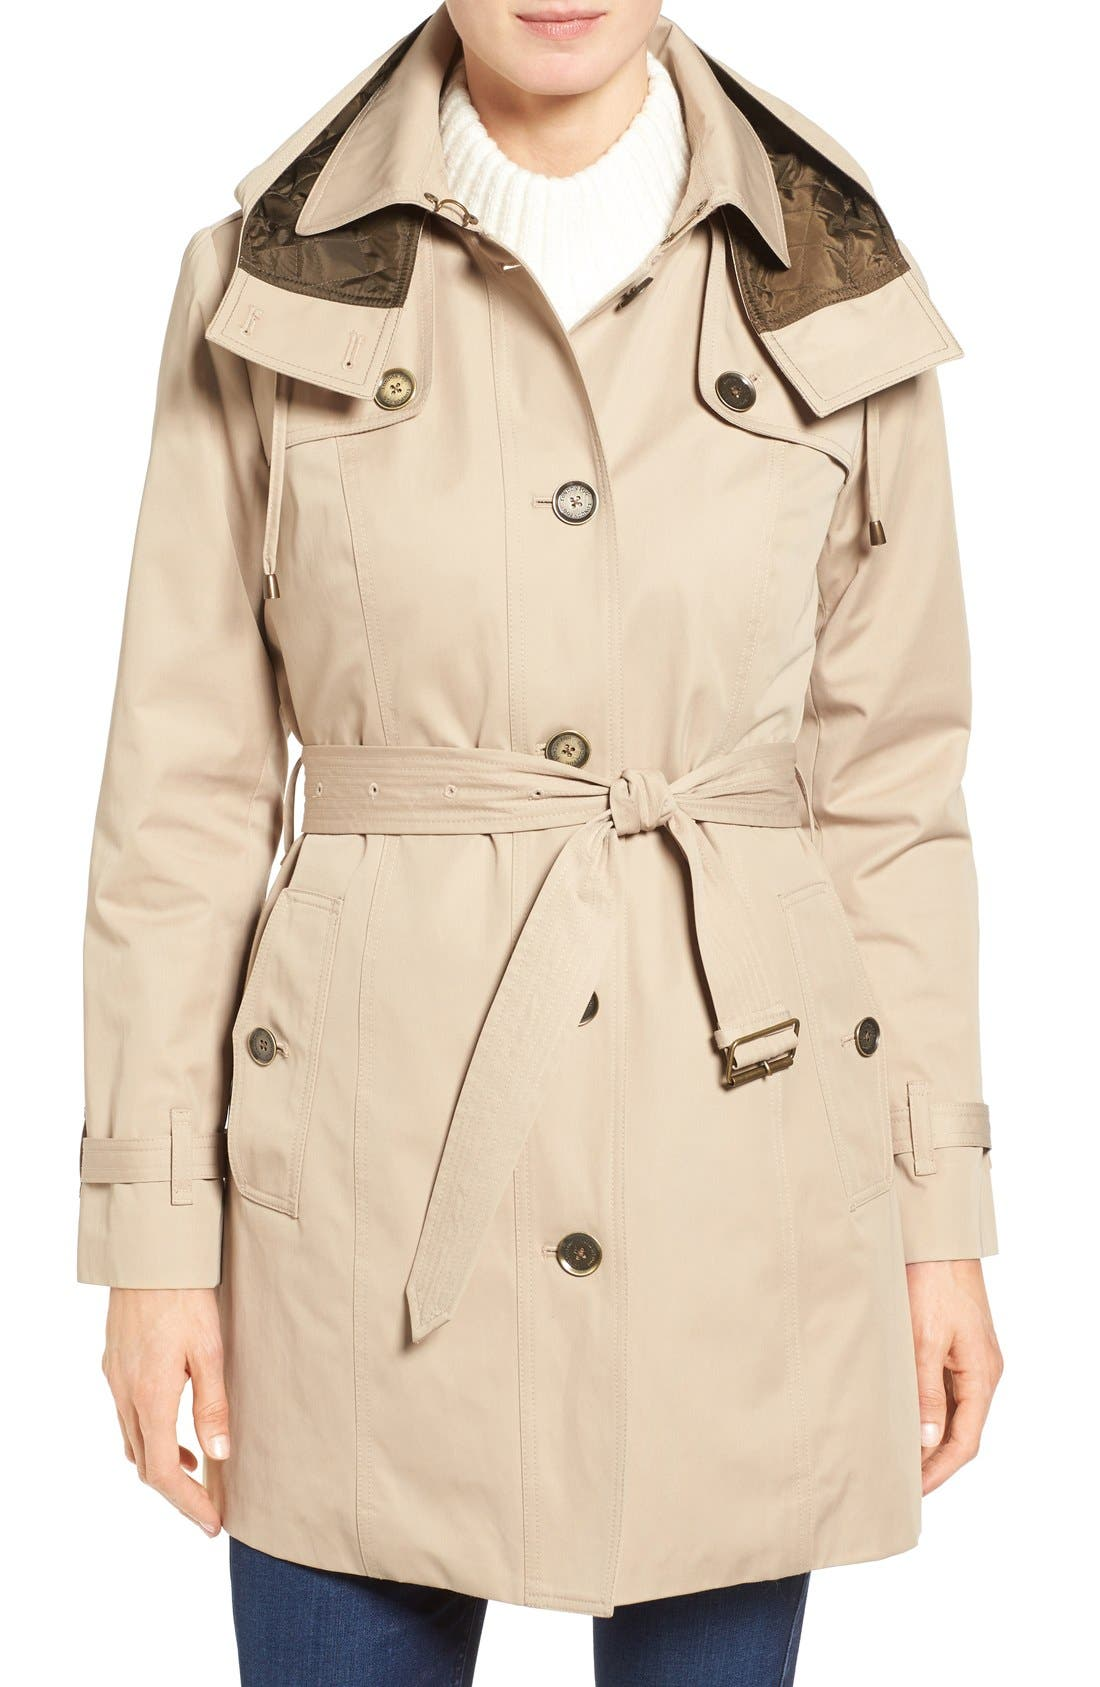 Main Image - London Fog Single Breasted Trench Coat (Regular & Petite)